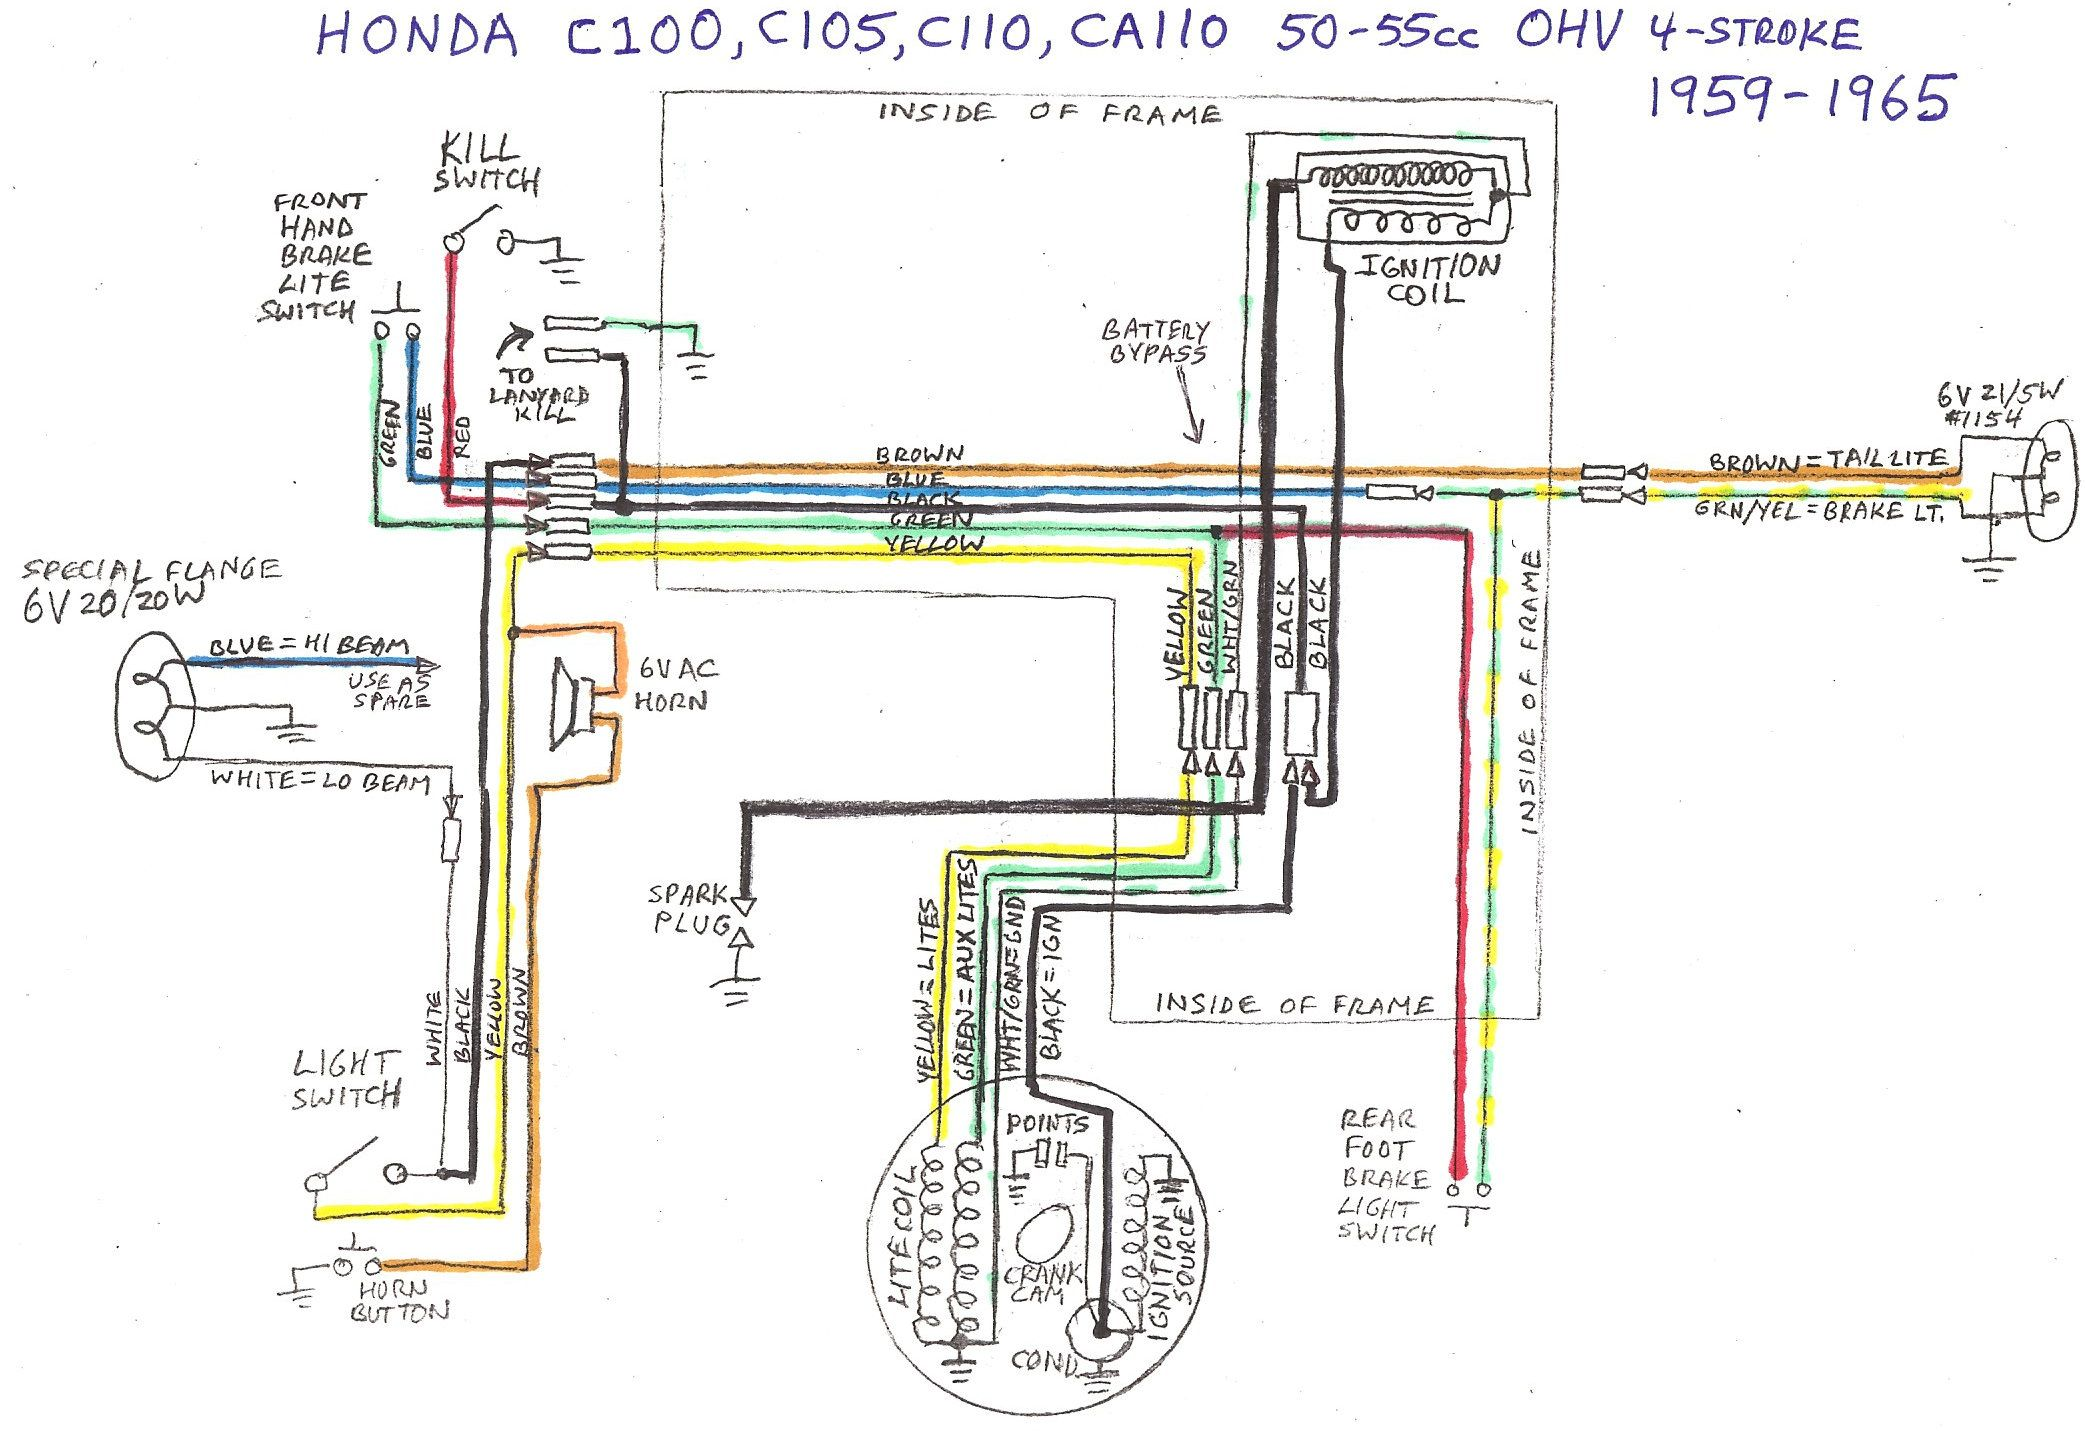 1964 Chevelle Wiring Diagram from i.pinimg.com